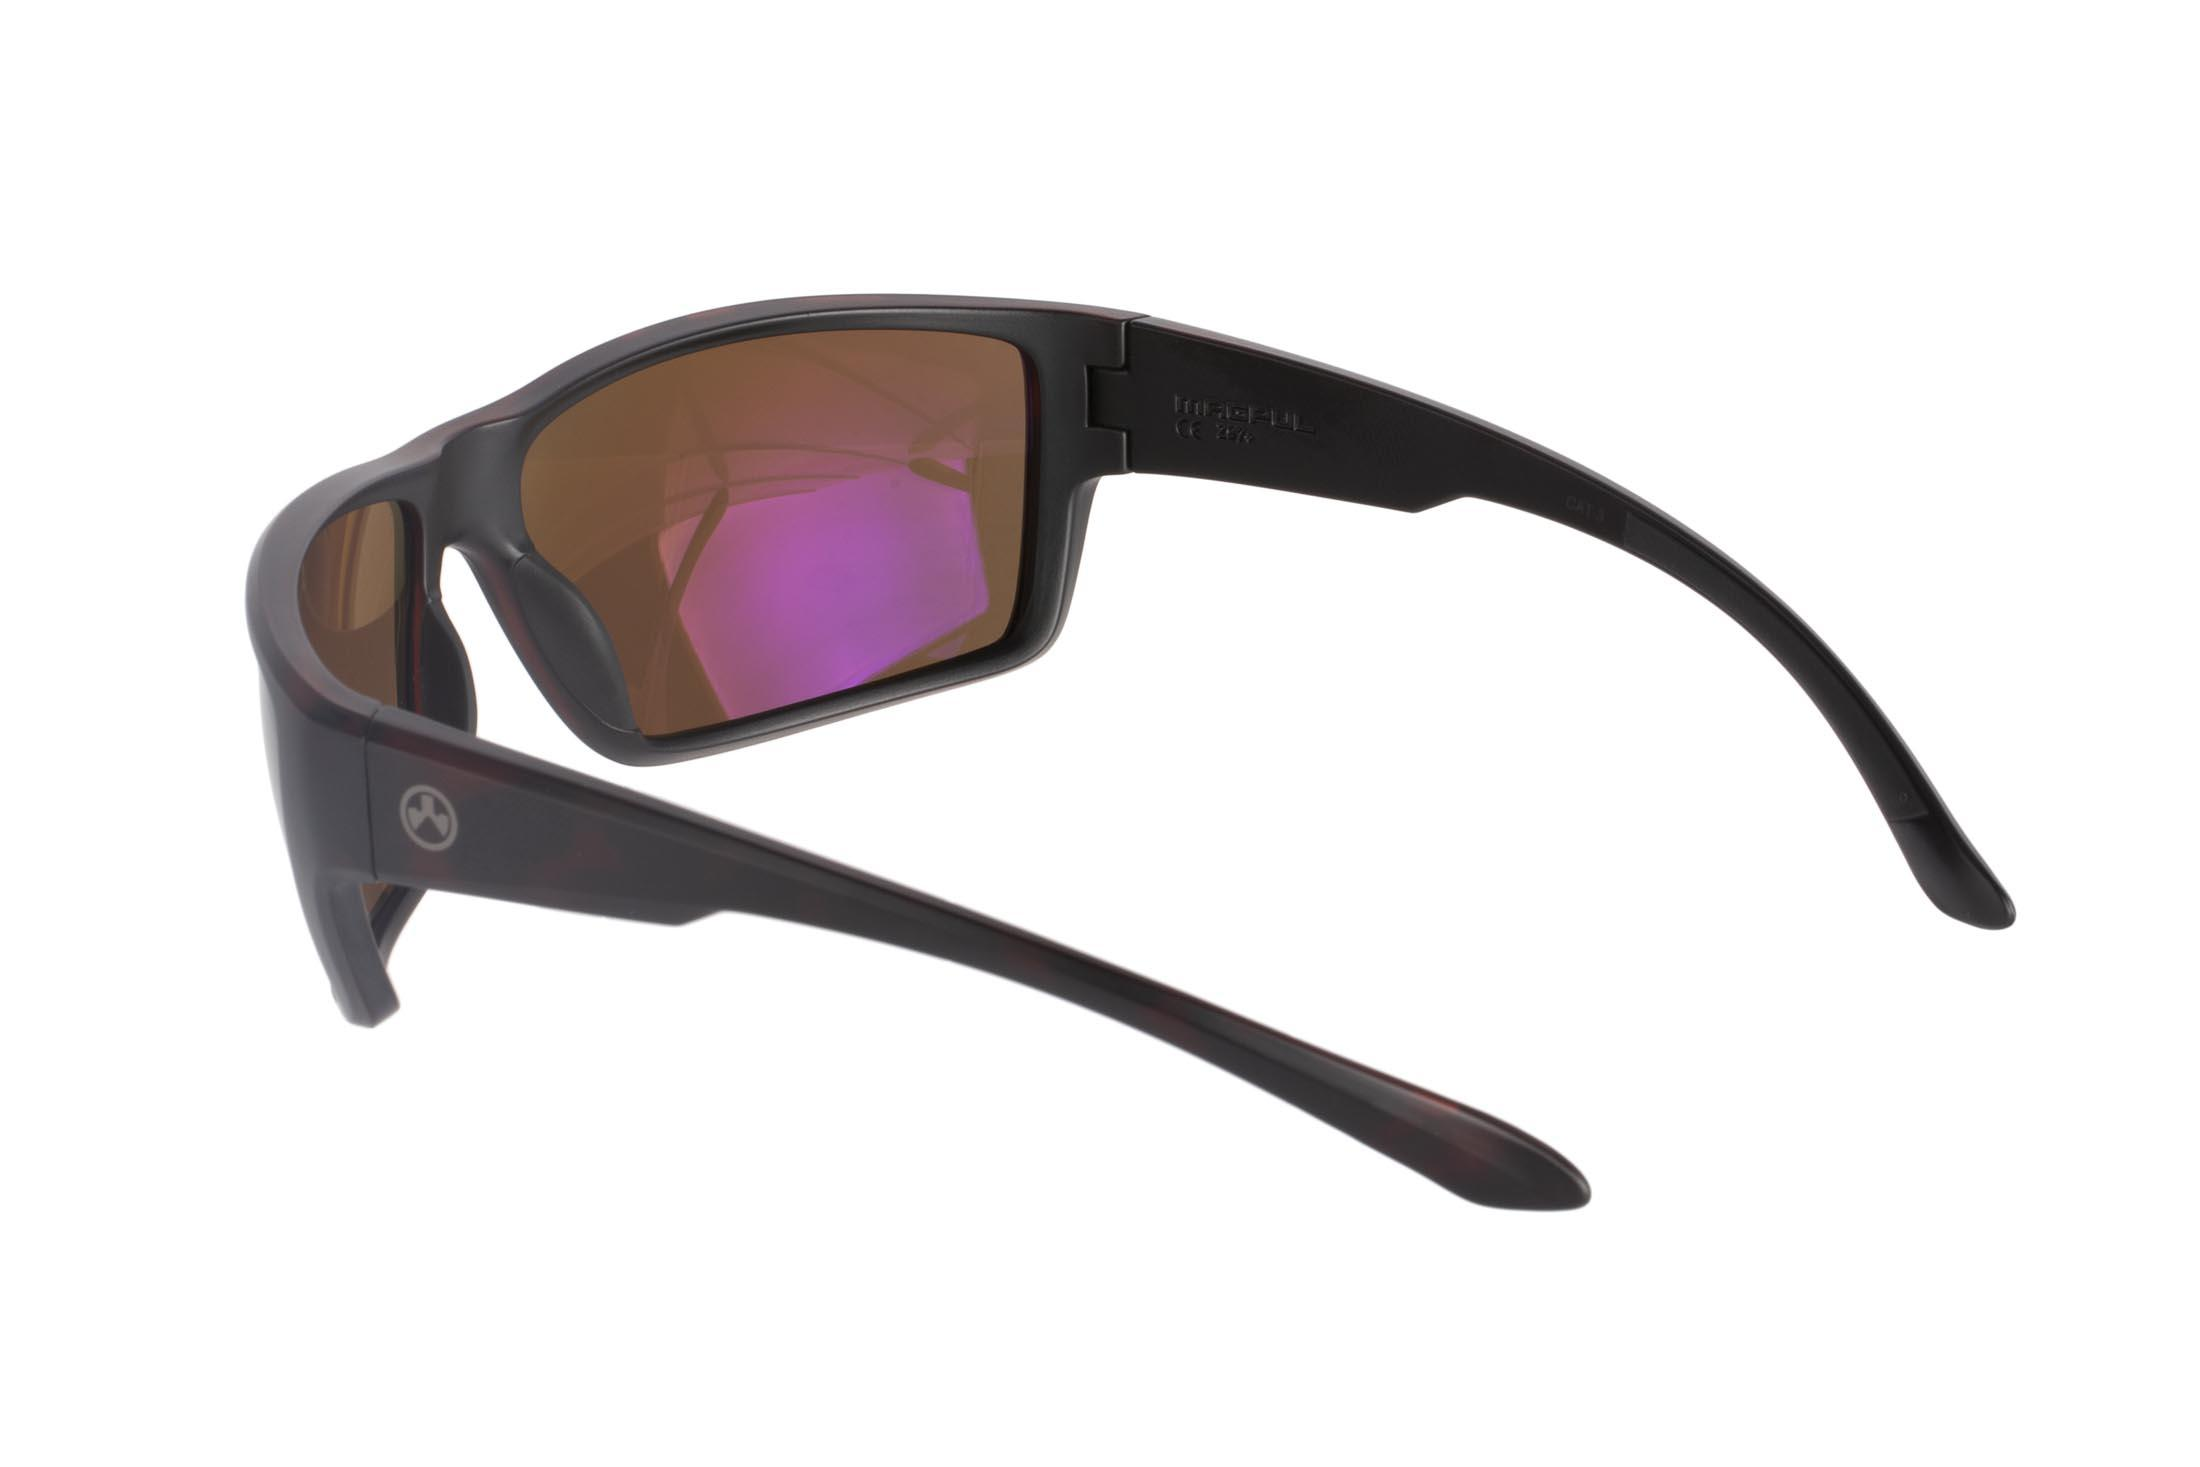 Magpul Terrain tortoise frame eye protection with polarized bronze lenses are designed to complement over-ear hearing protection